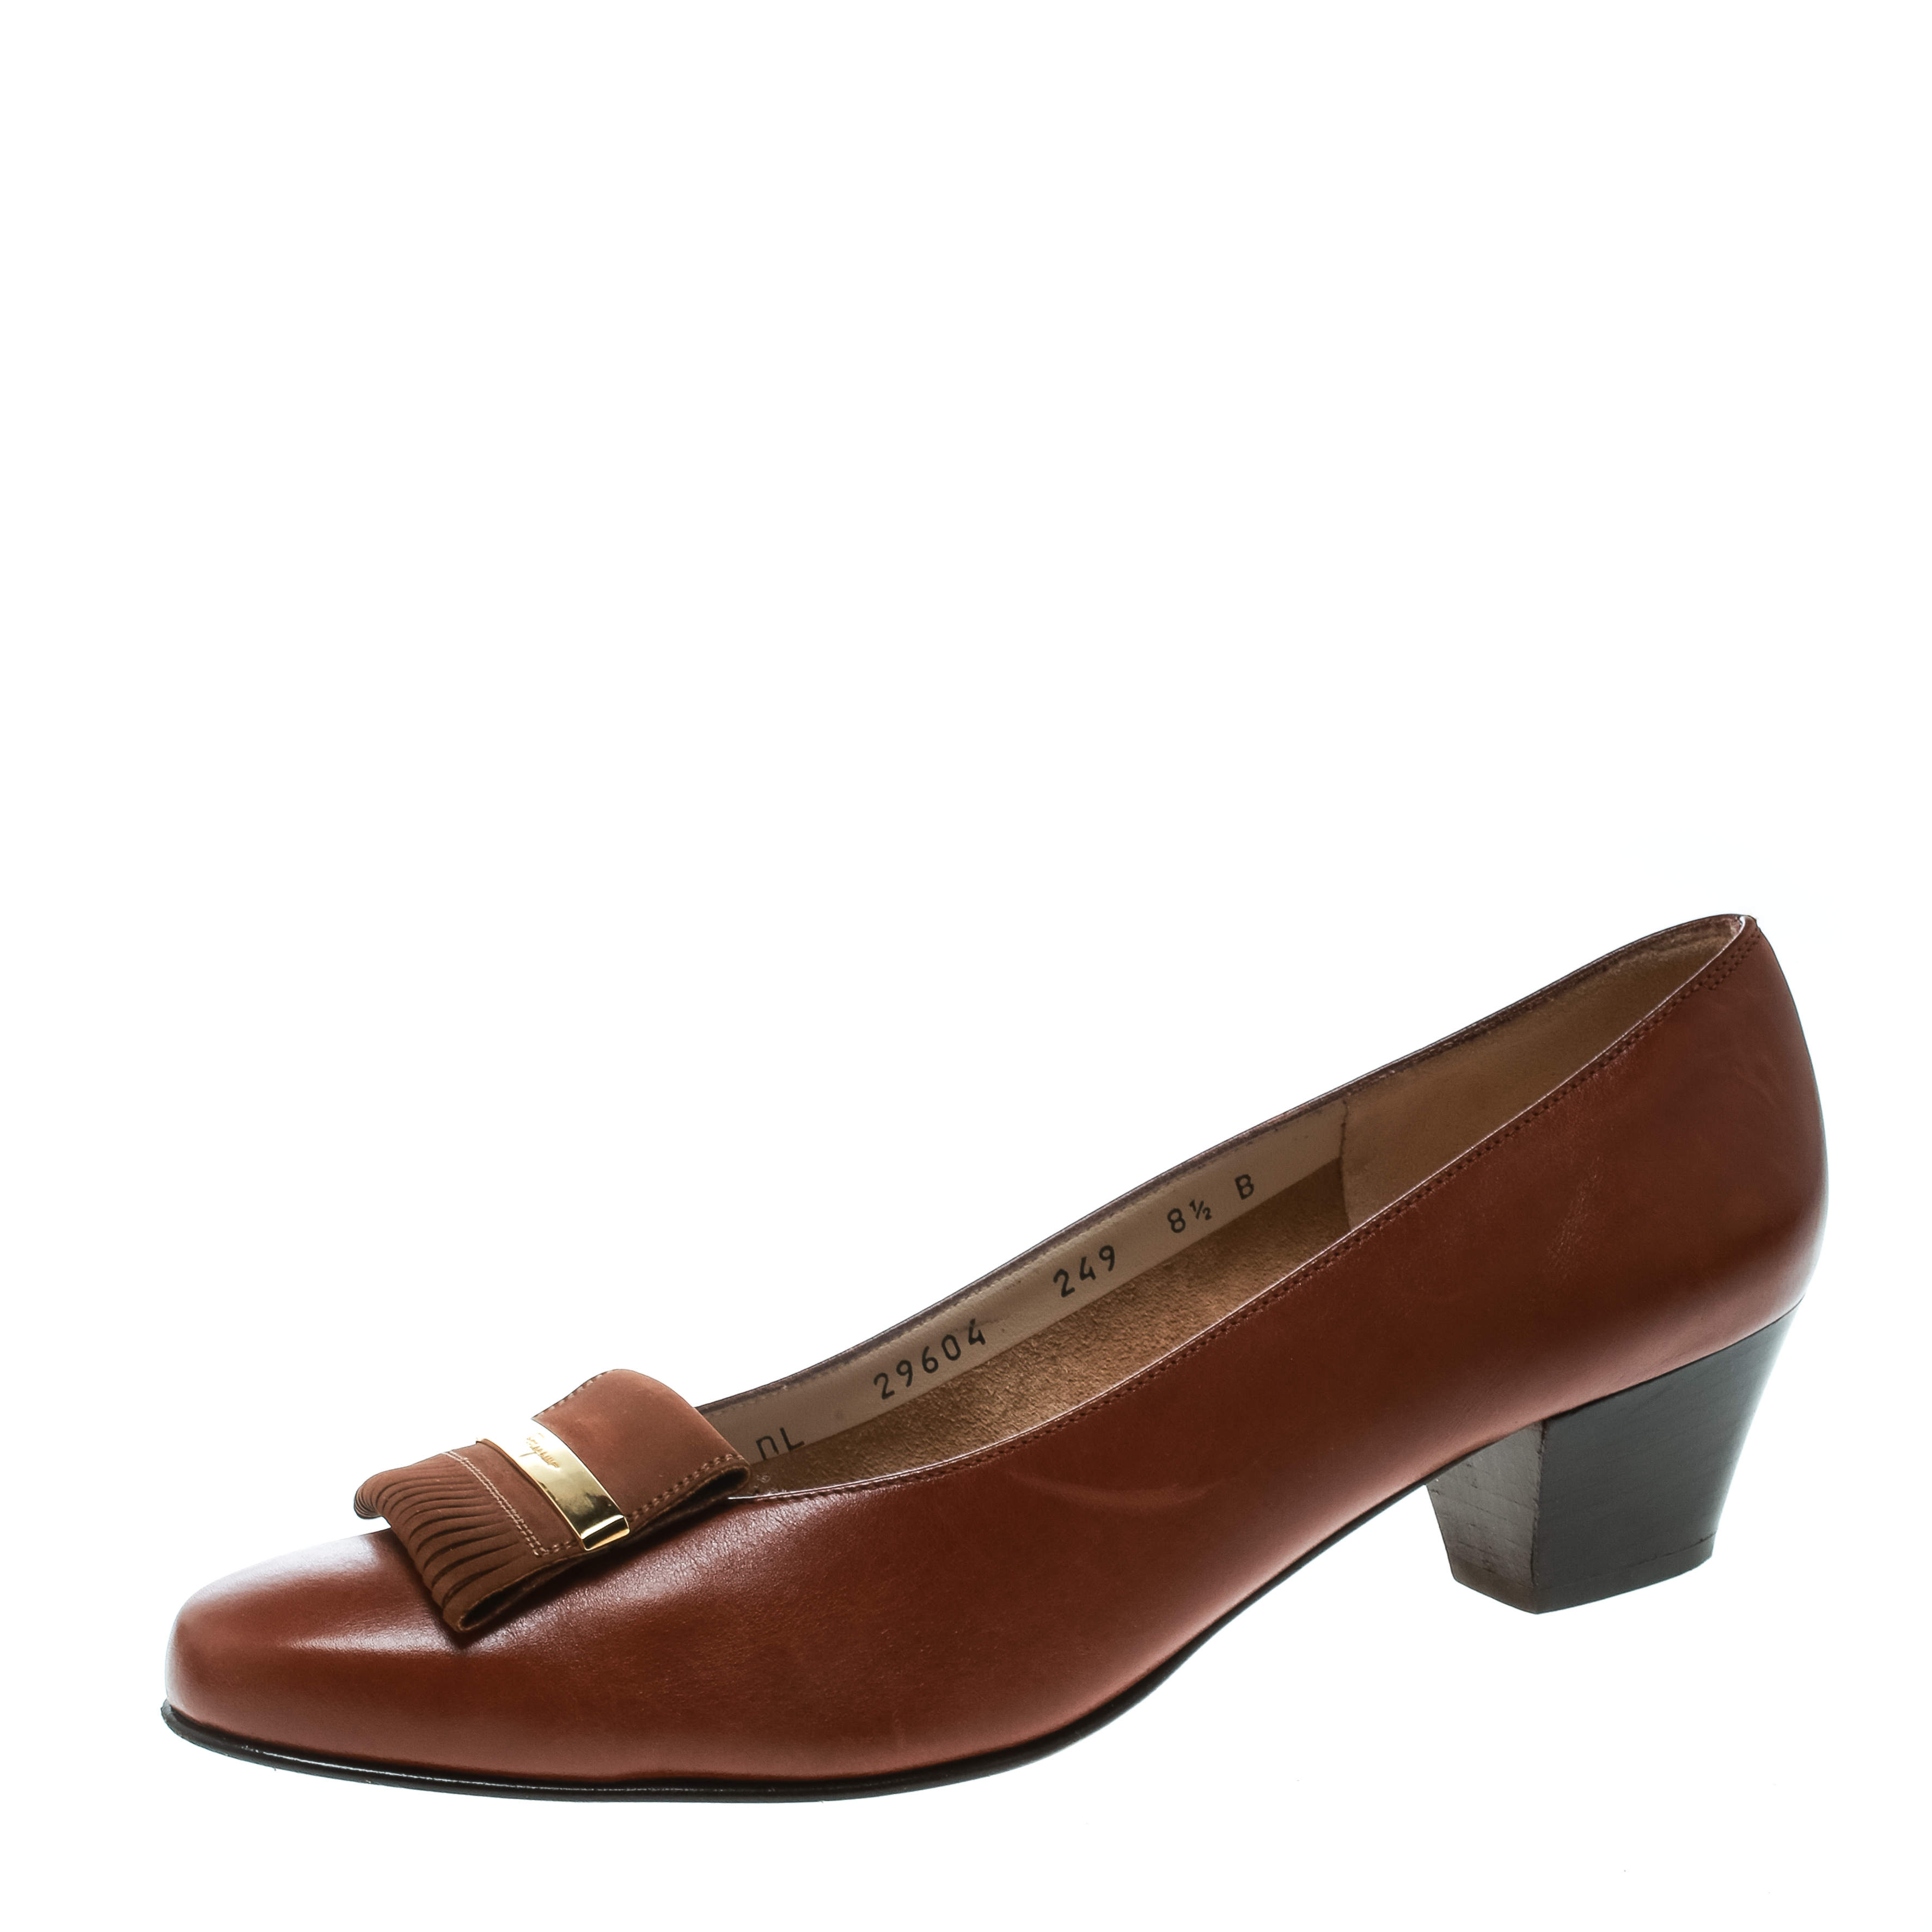 Salvatore Ferragamo Brown Leather Fringe Detail Pumps Size 39